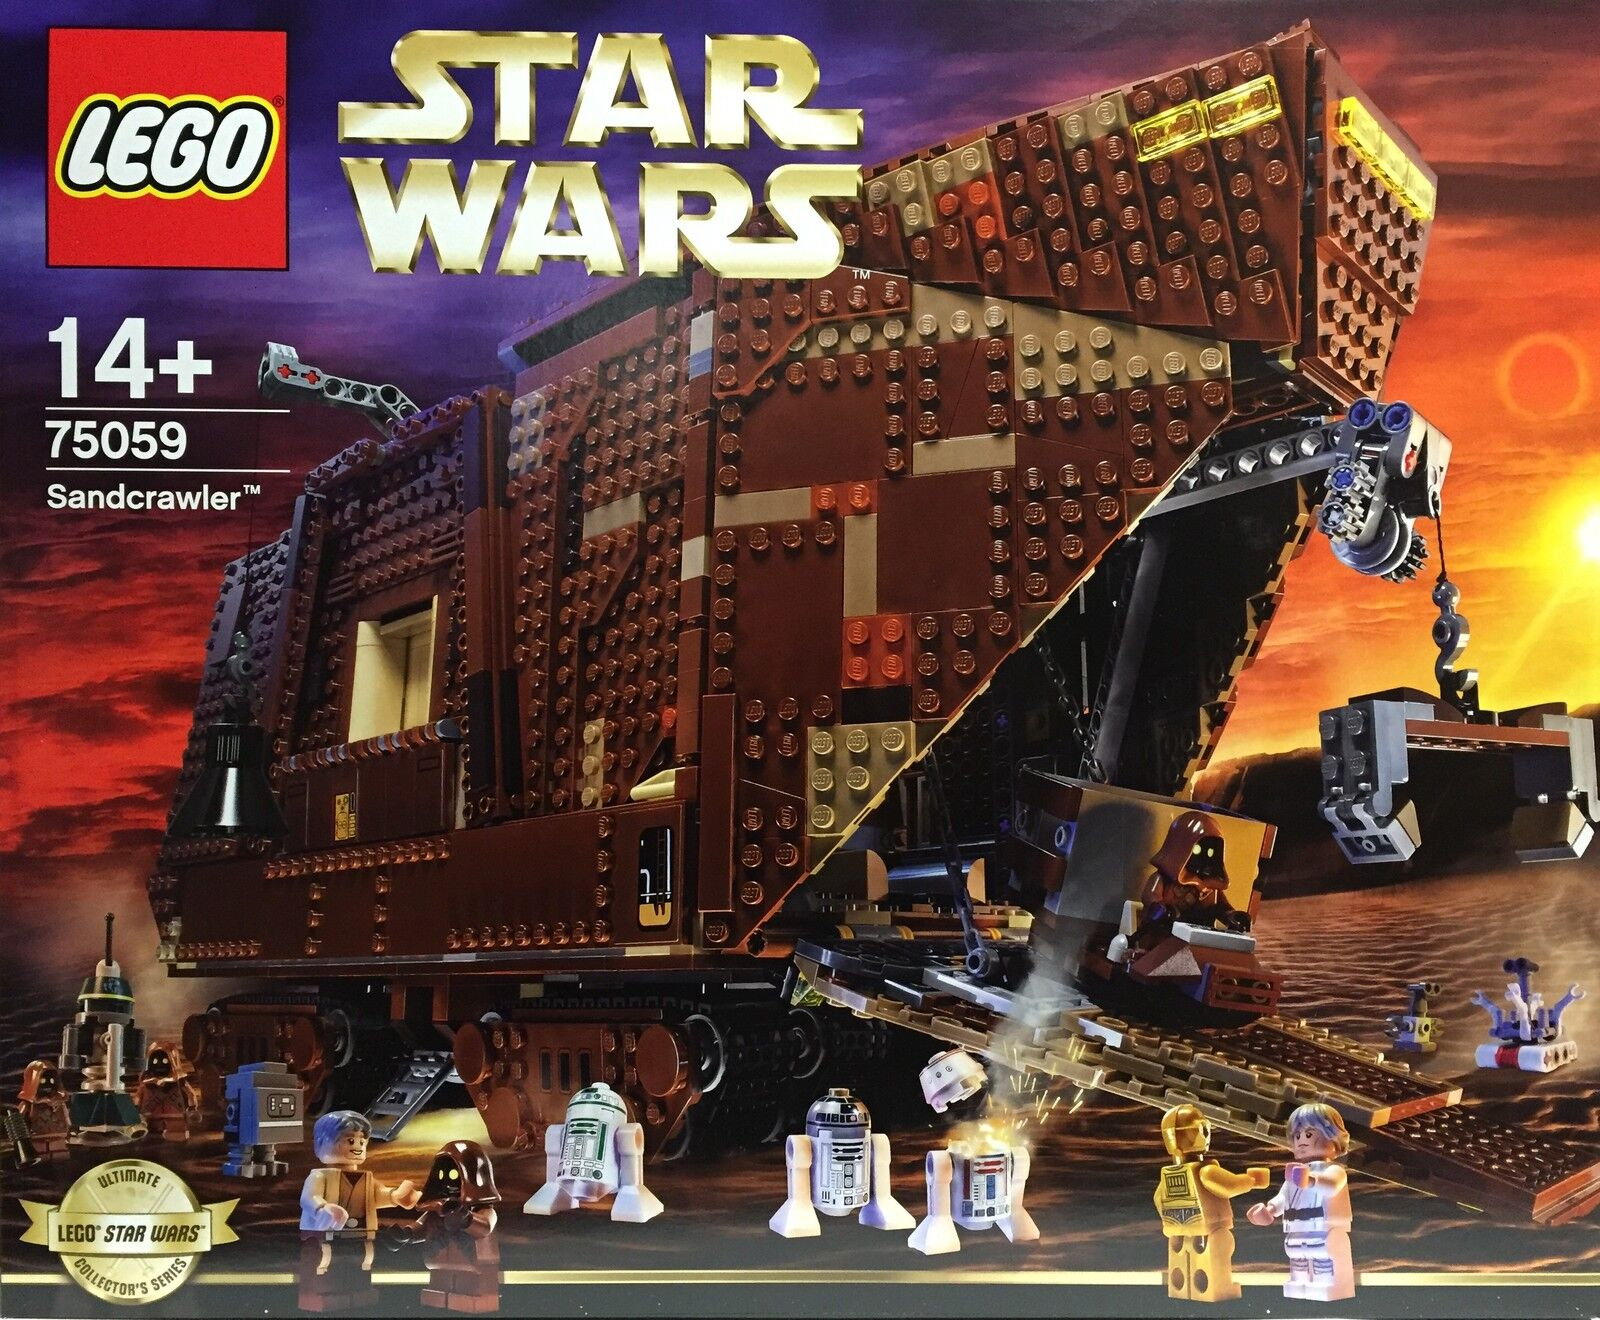 LEGO 75059 Star Wars Sandcrawler Ultimate Collectors Series UCS Neu & OVP